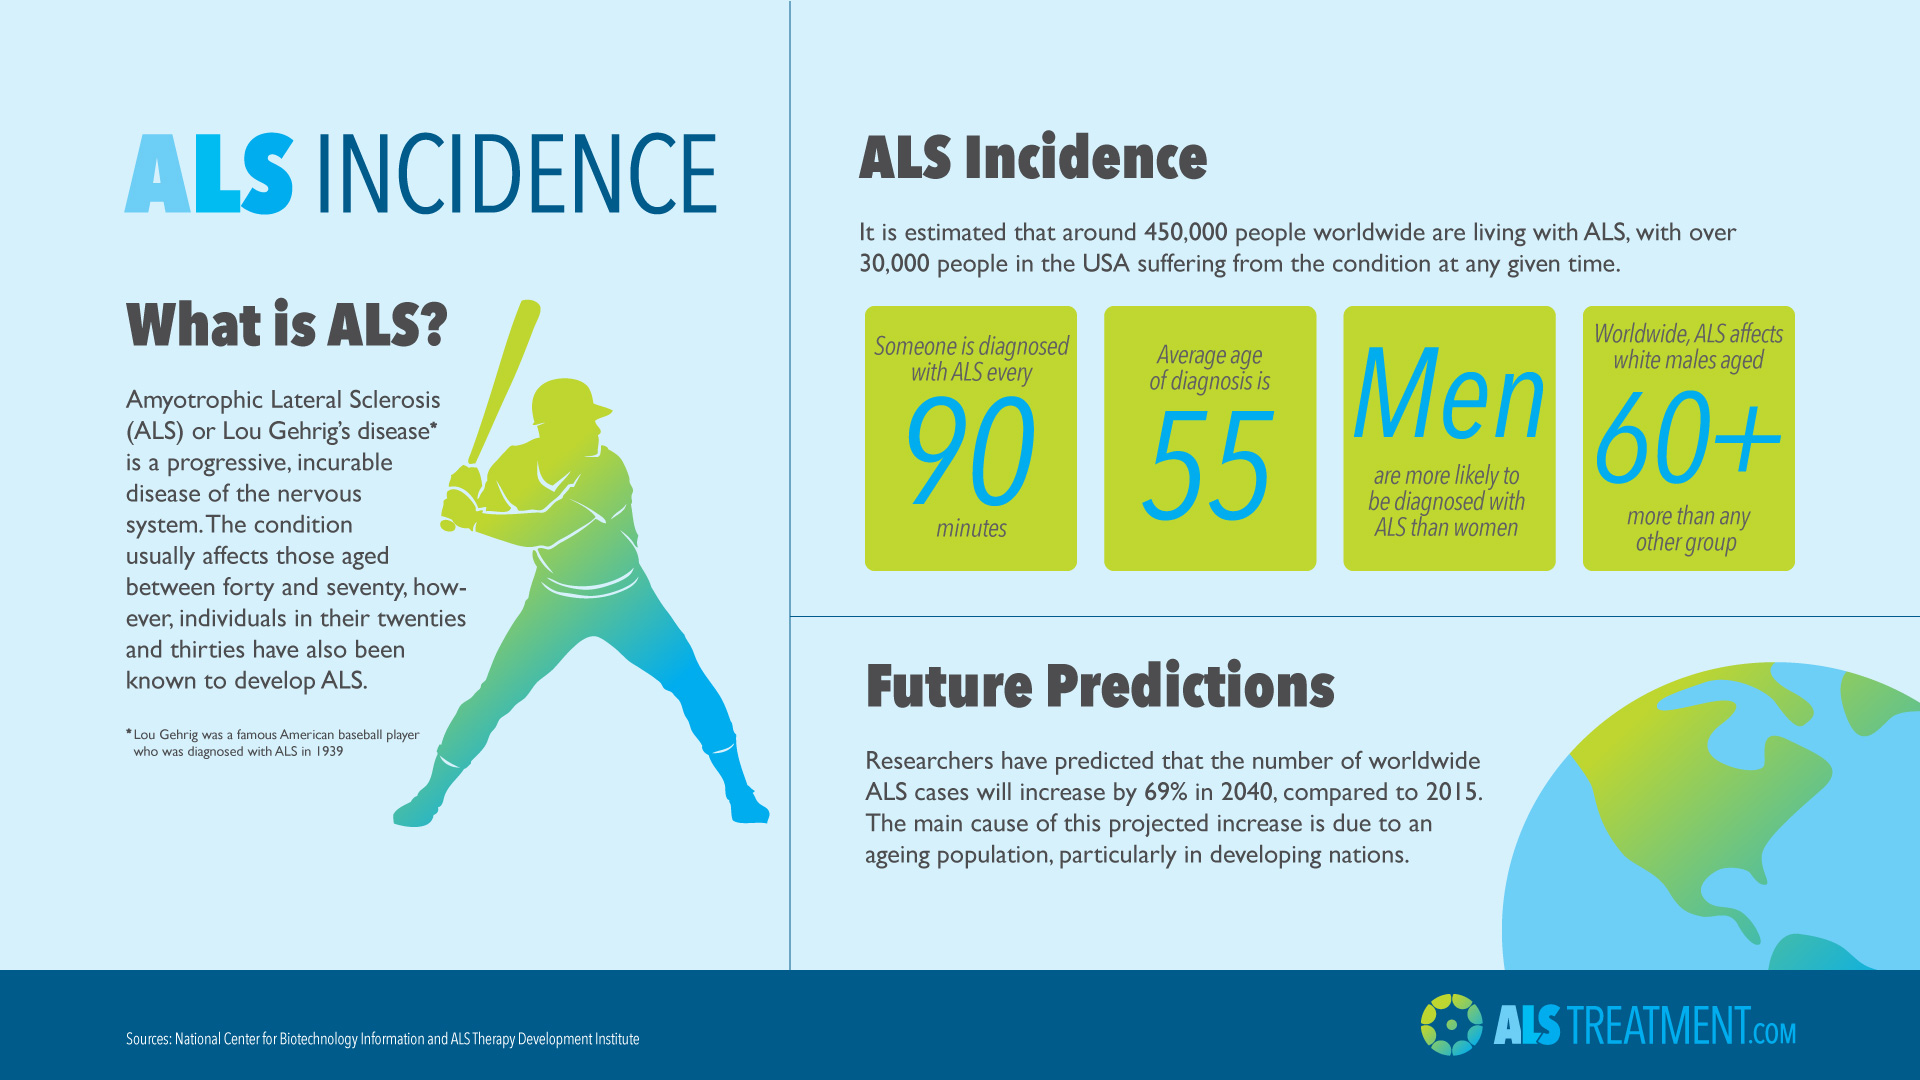 als-incidence-infographic